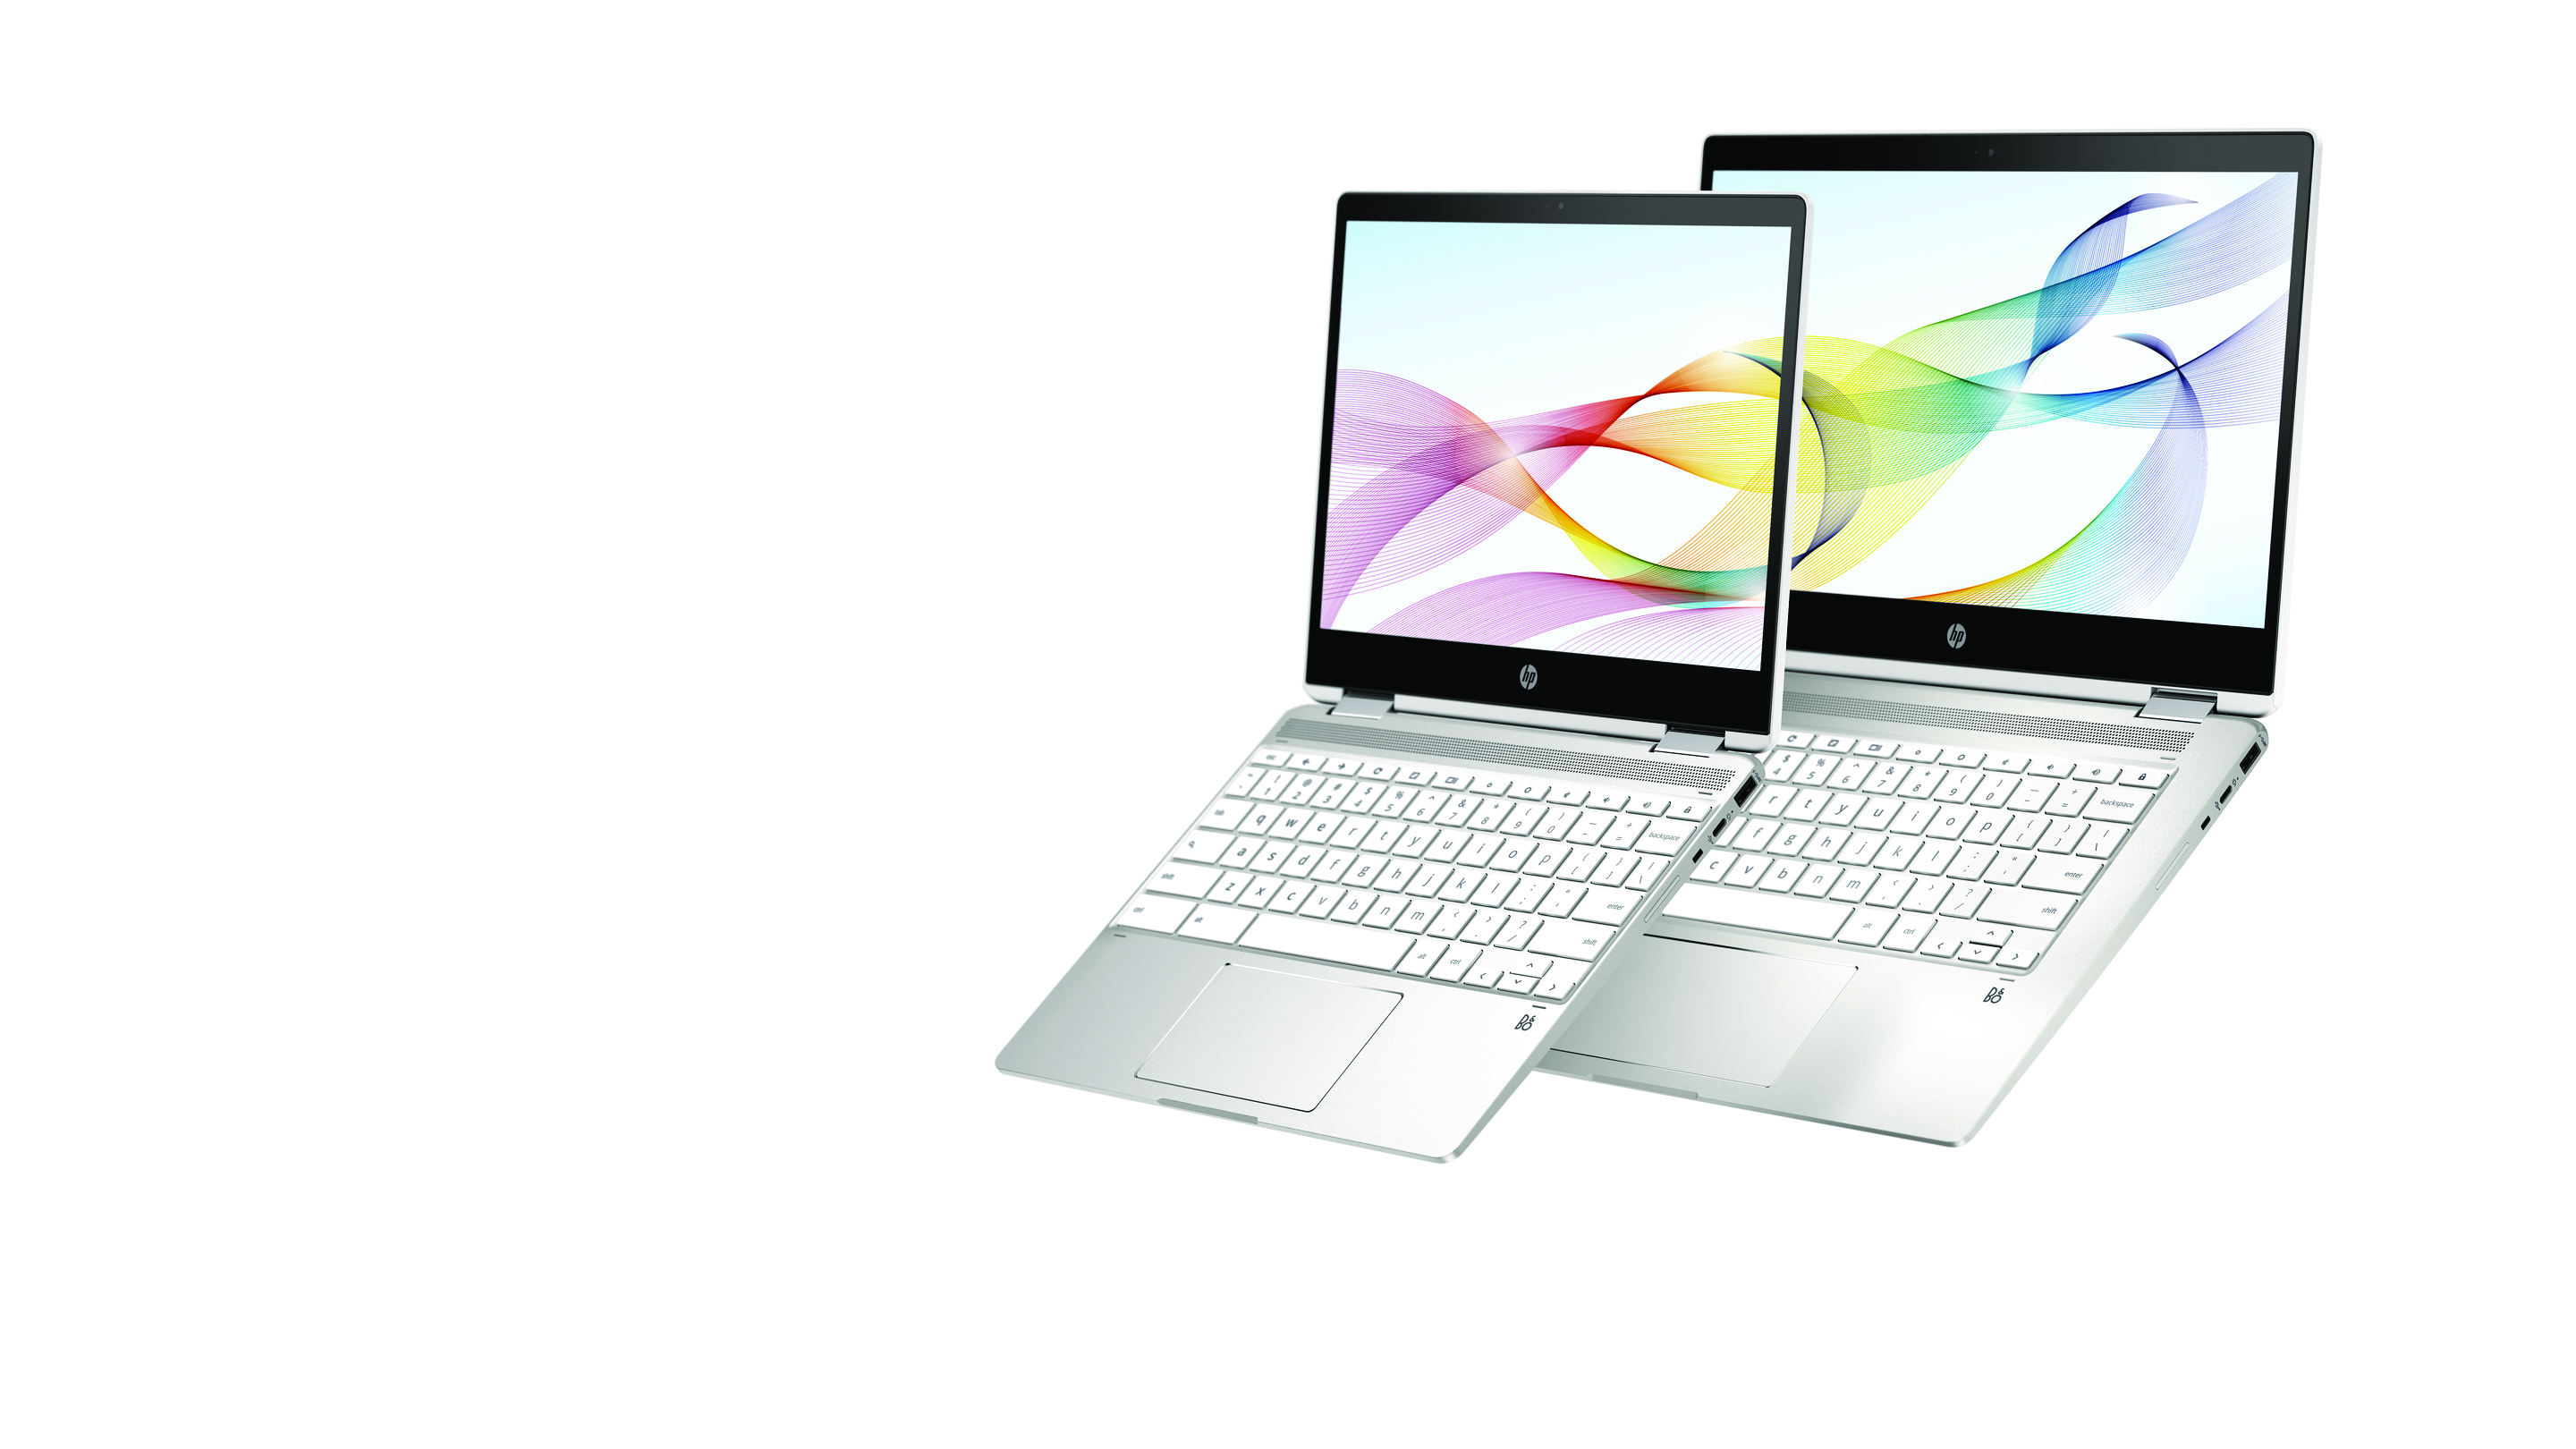 HP Chromebook x360 12b and HP Chromebook x360 14 in natural silver.jpg